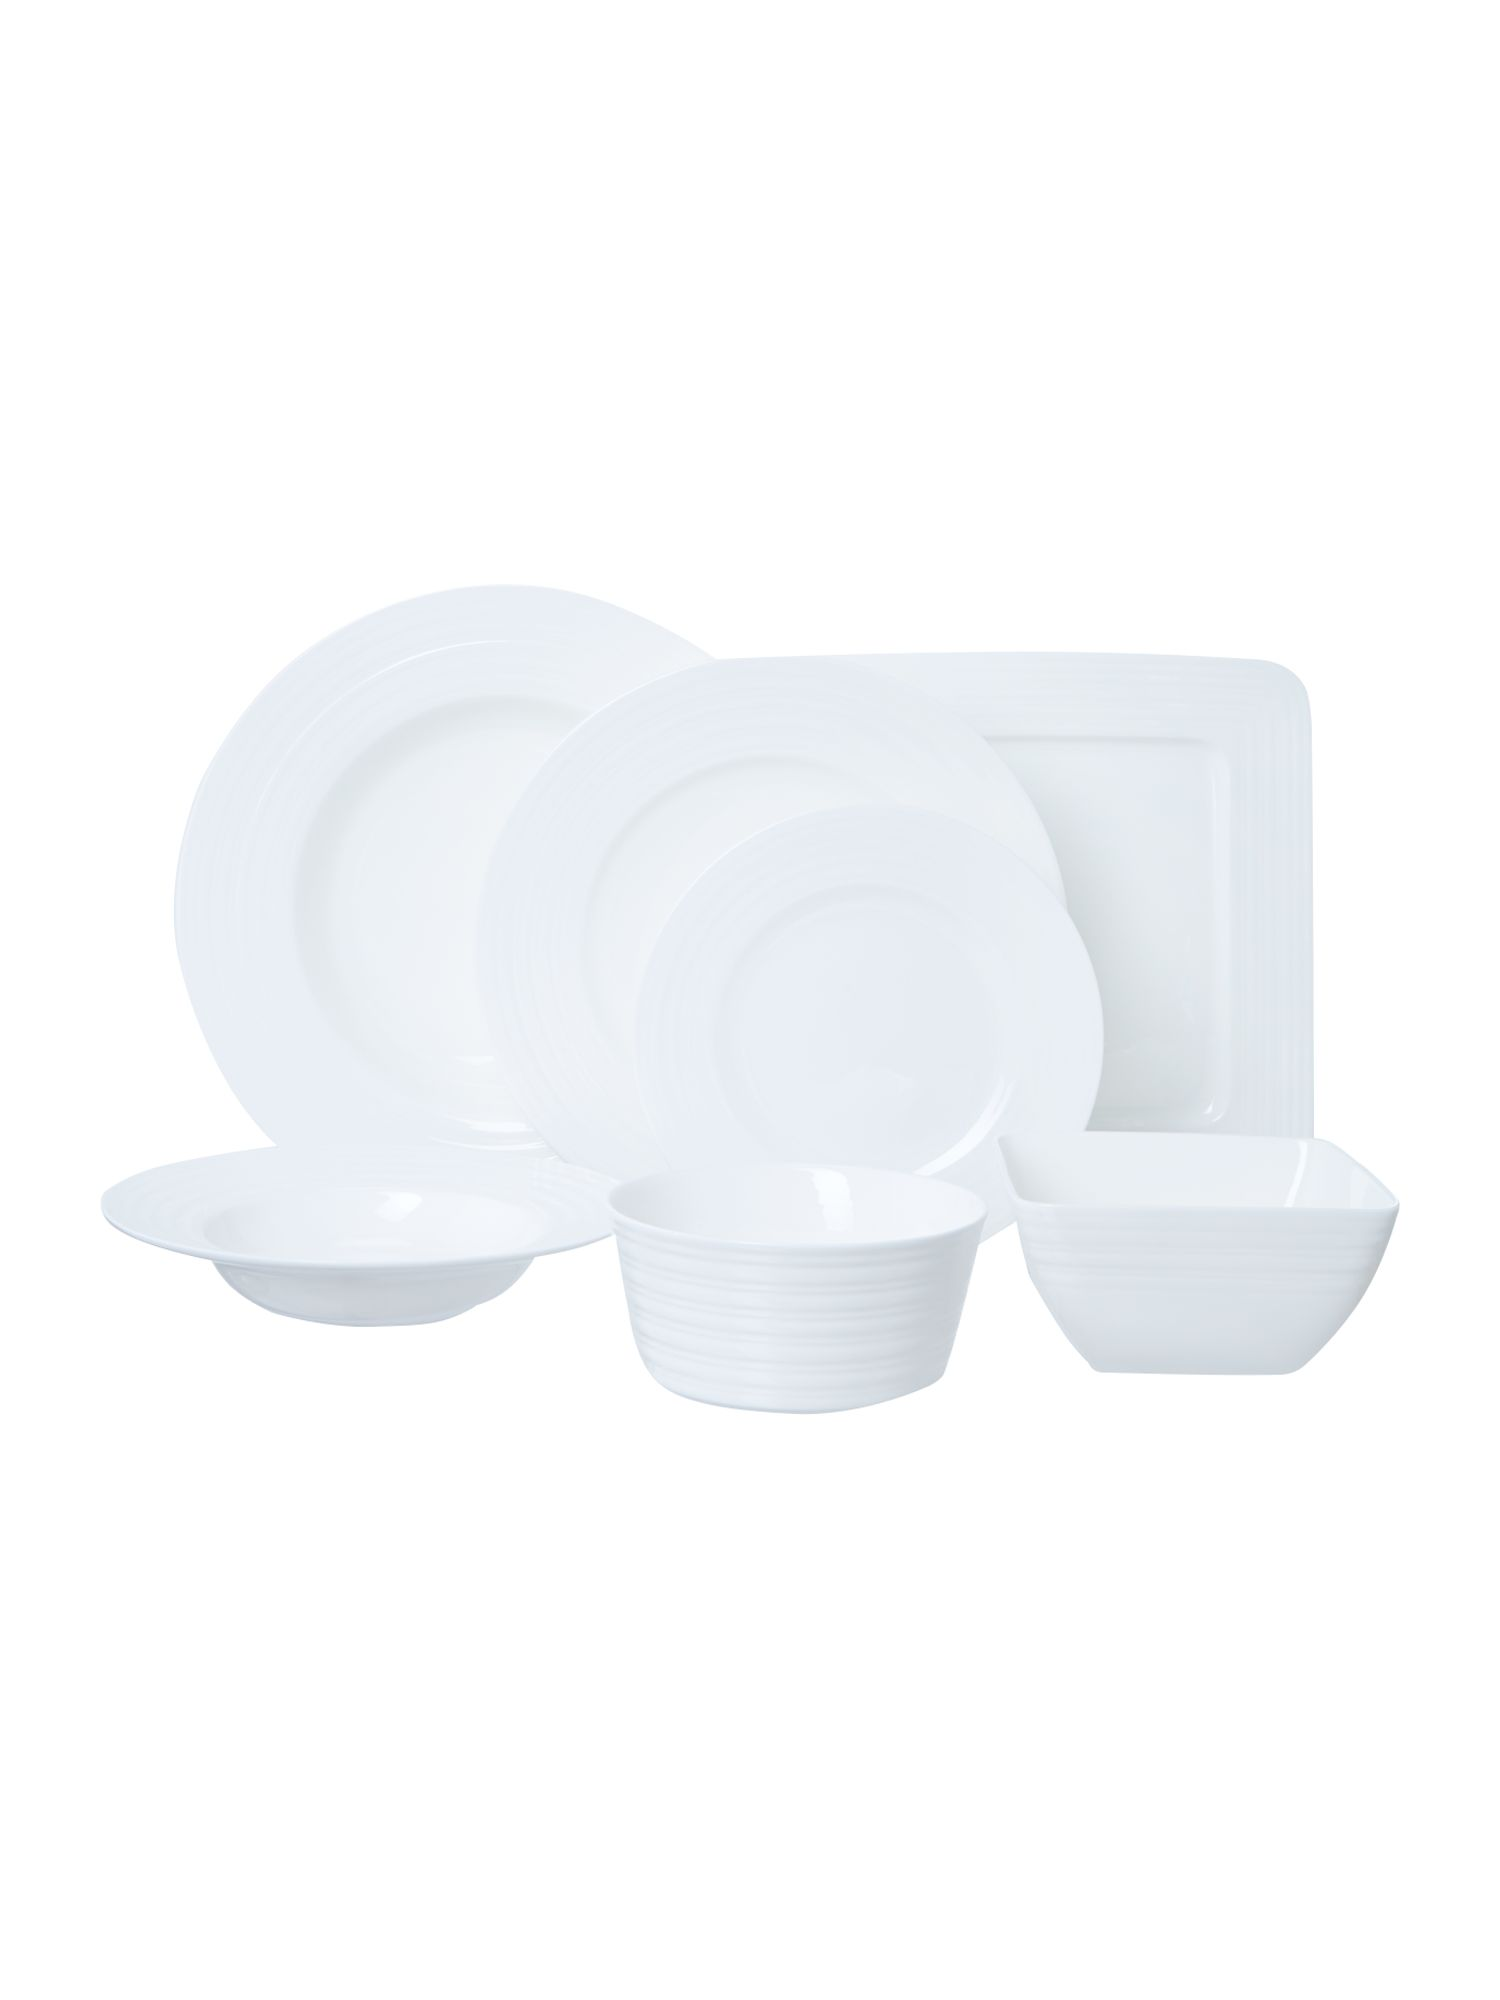 Soho rimmed soup bowl set of 4